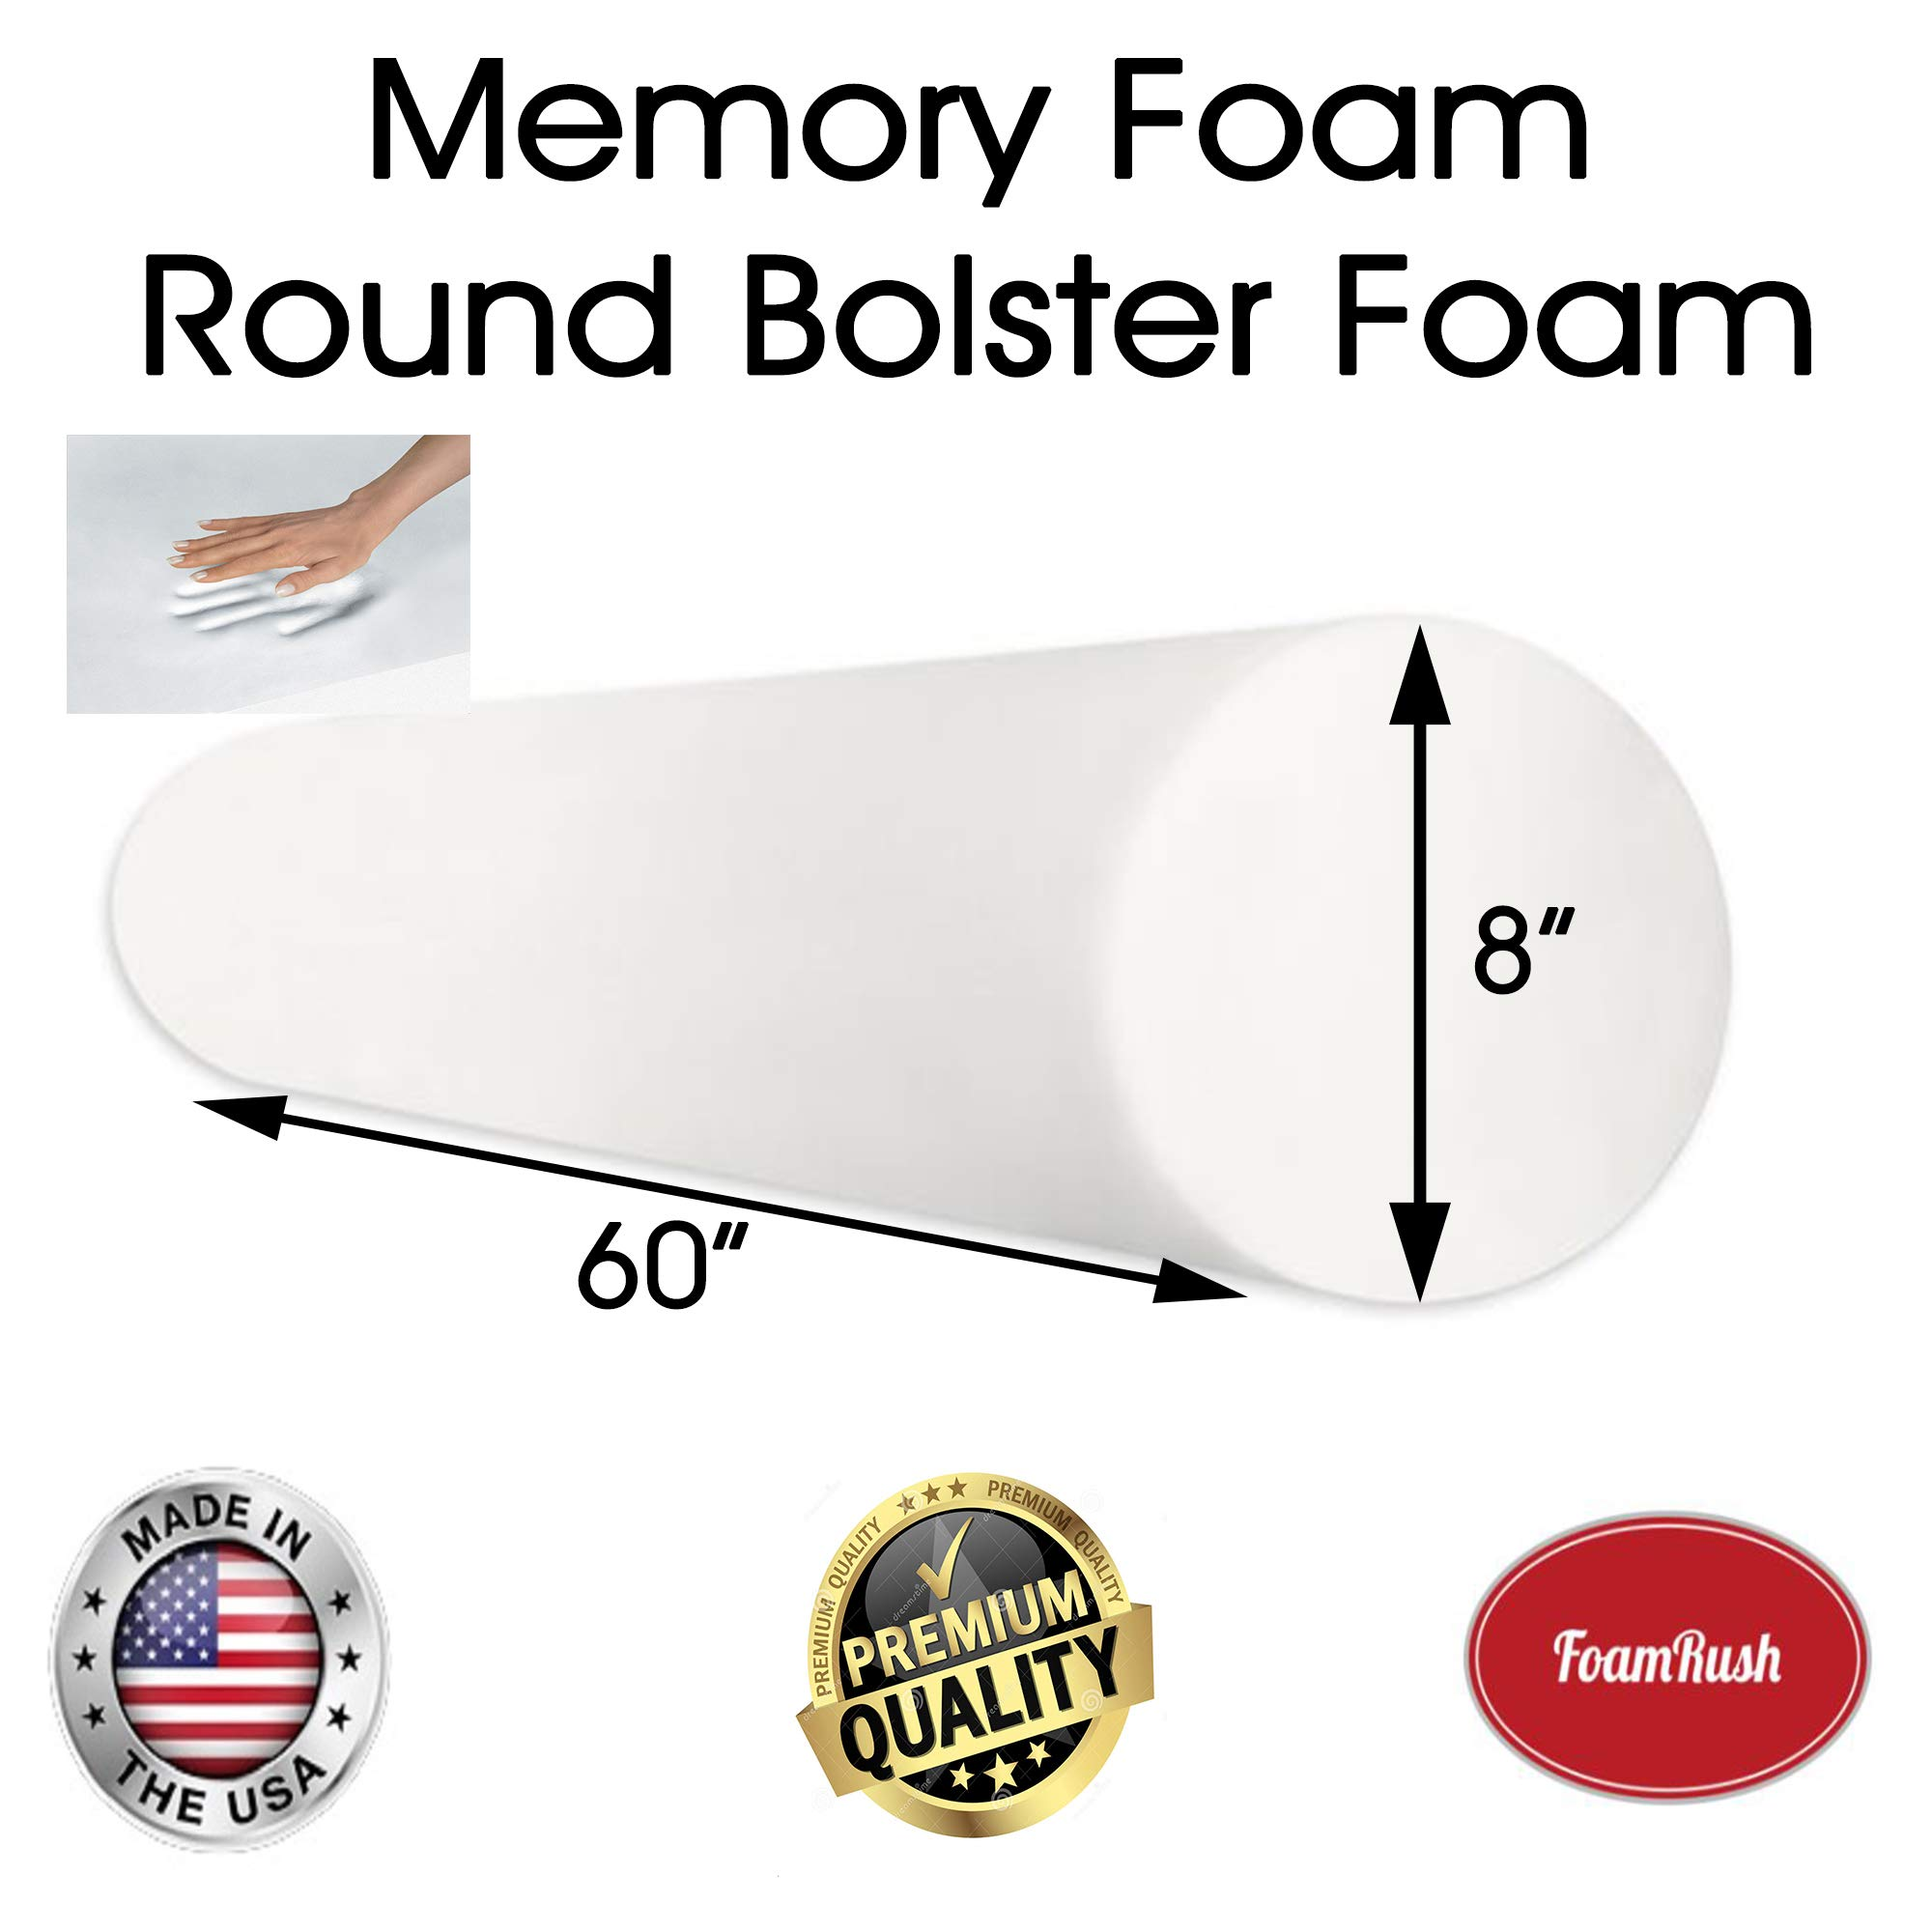 FoamRush 8'' Diameter x 60'' Long Premium Quality Round Bolster Memory Foam Roll Insert Replacement (Ideal for Home Accent Décor Positioning and General Fitness) Made in USA